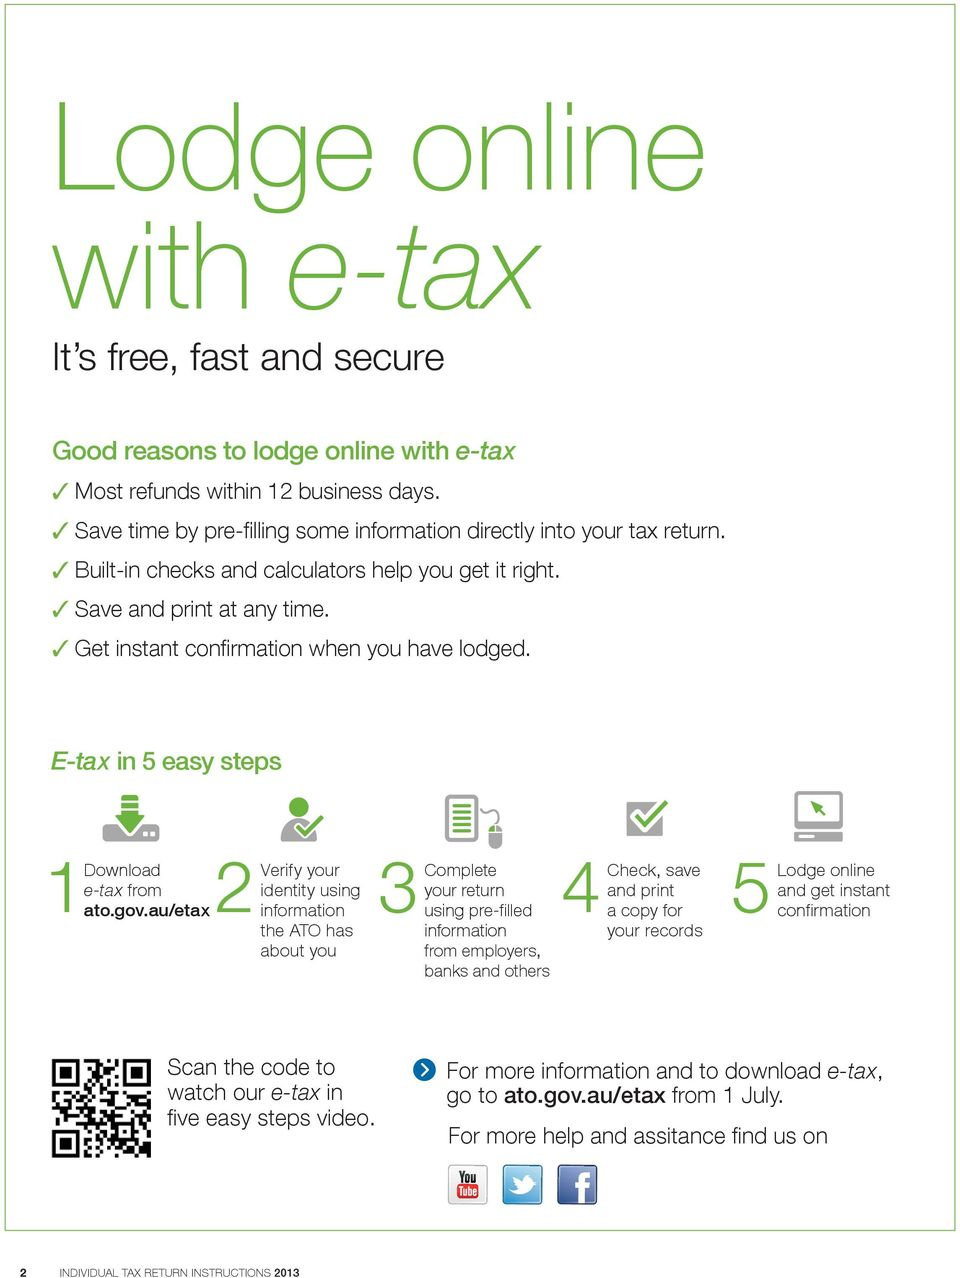 3 Get instant confirmation when you have lodged. E-tax in 5 easy steps Download your e tax from identity using ato.gov.